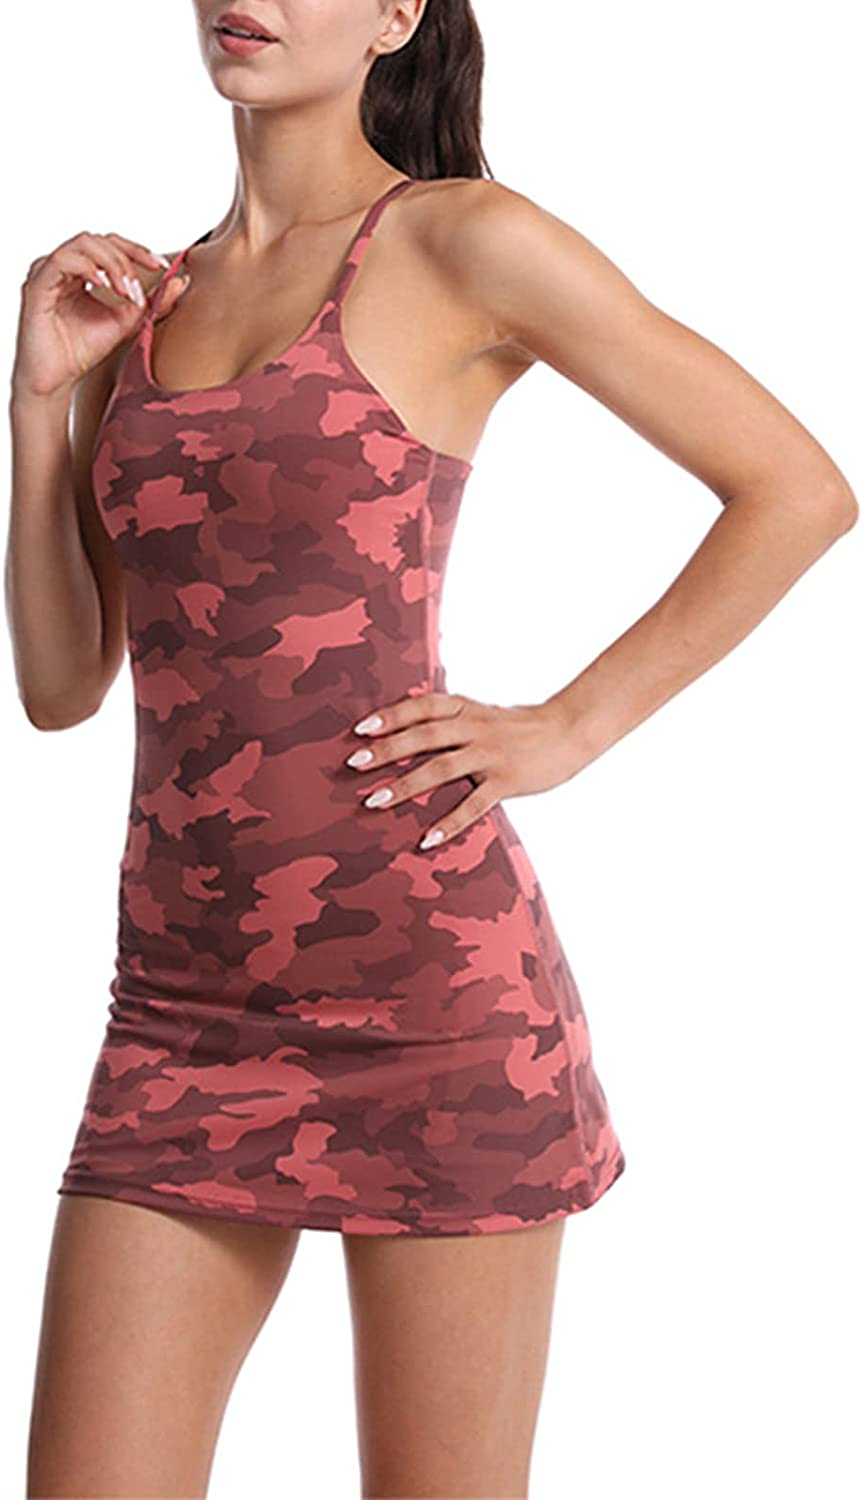 Sobrisah Online limited product Workout Dress for Athleti Tennis Women Luxury Sleeveless